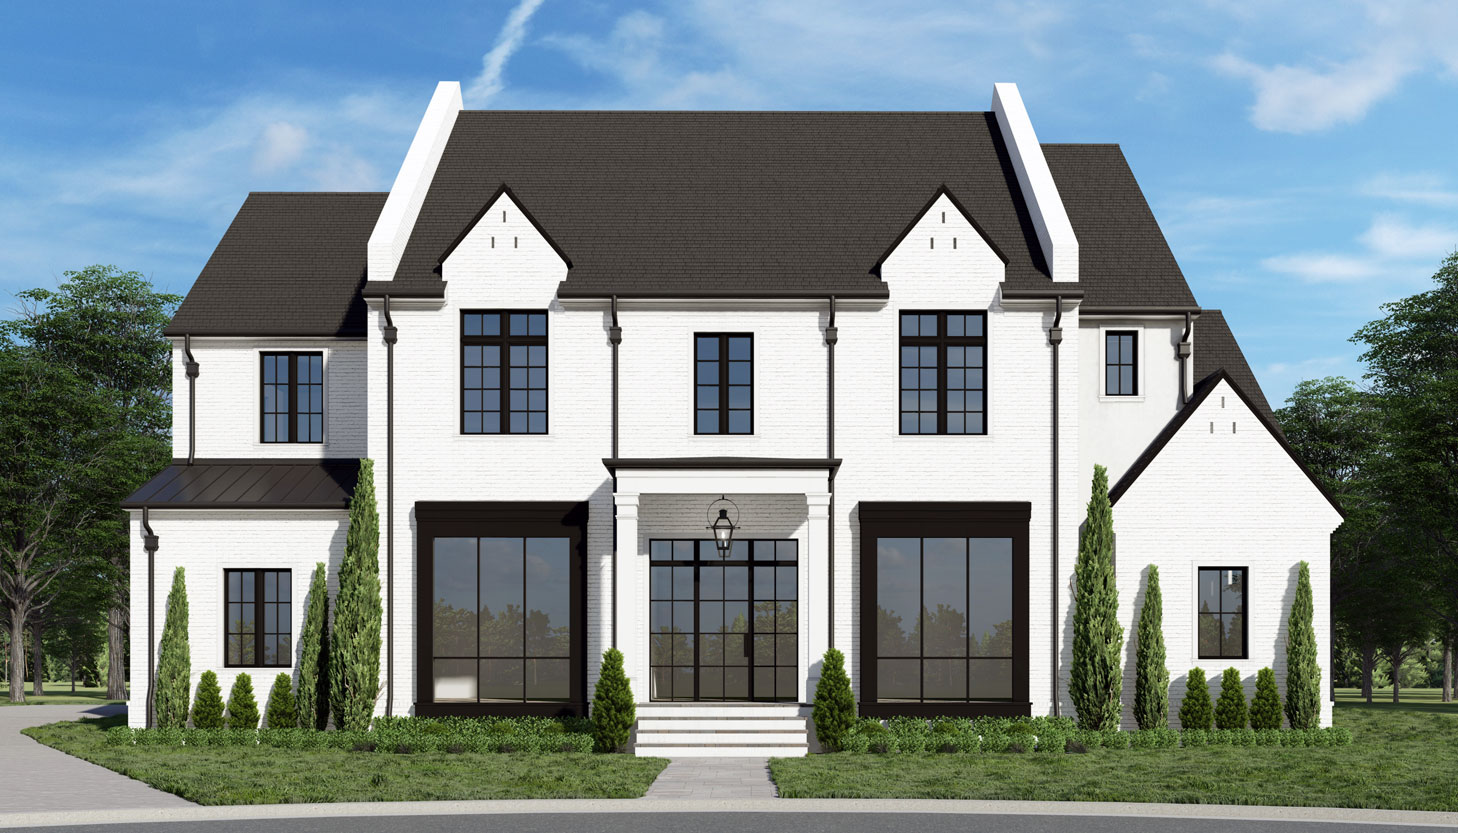 235-36th-Street-Creative-Builders-Parade-of-Homes-New-Orleans.jpg